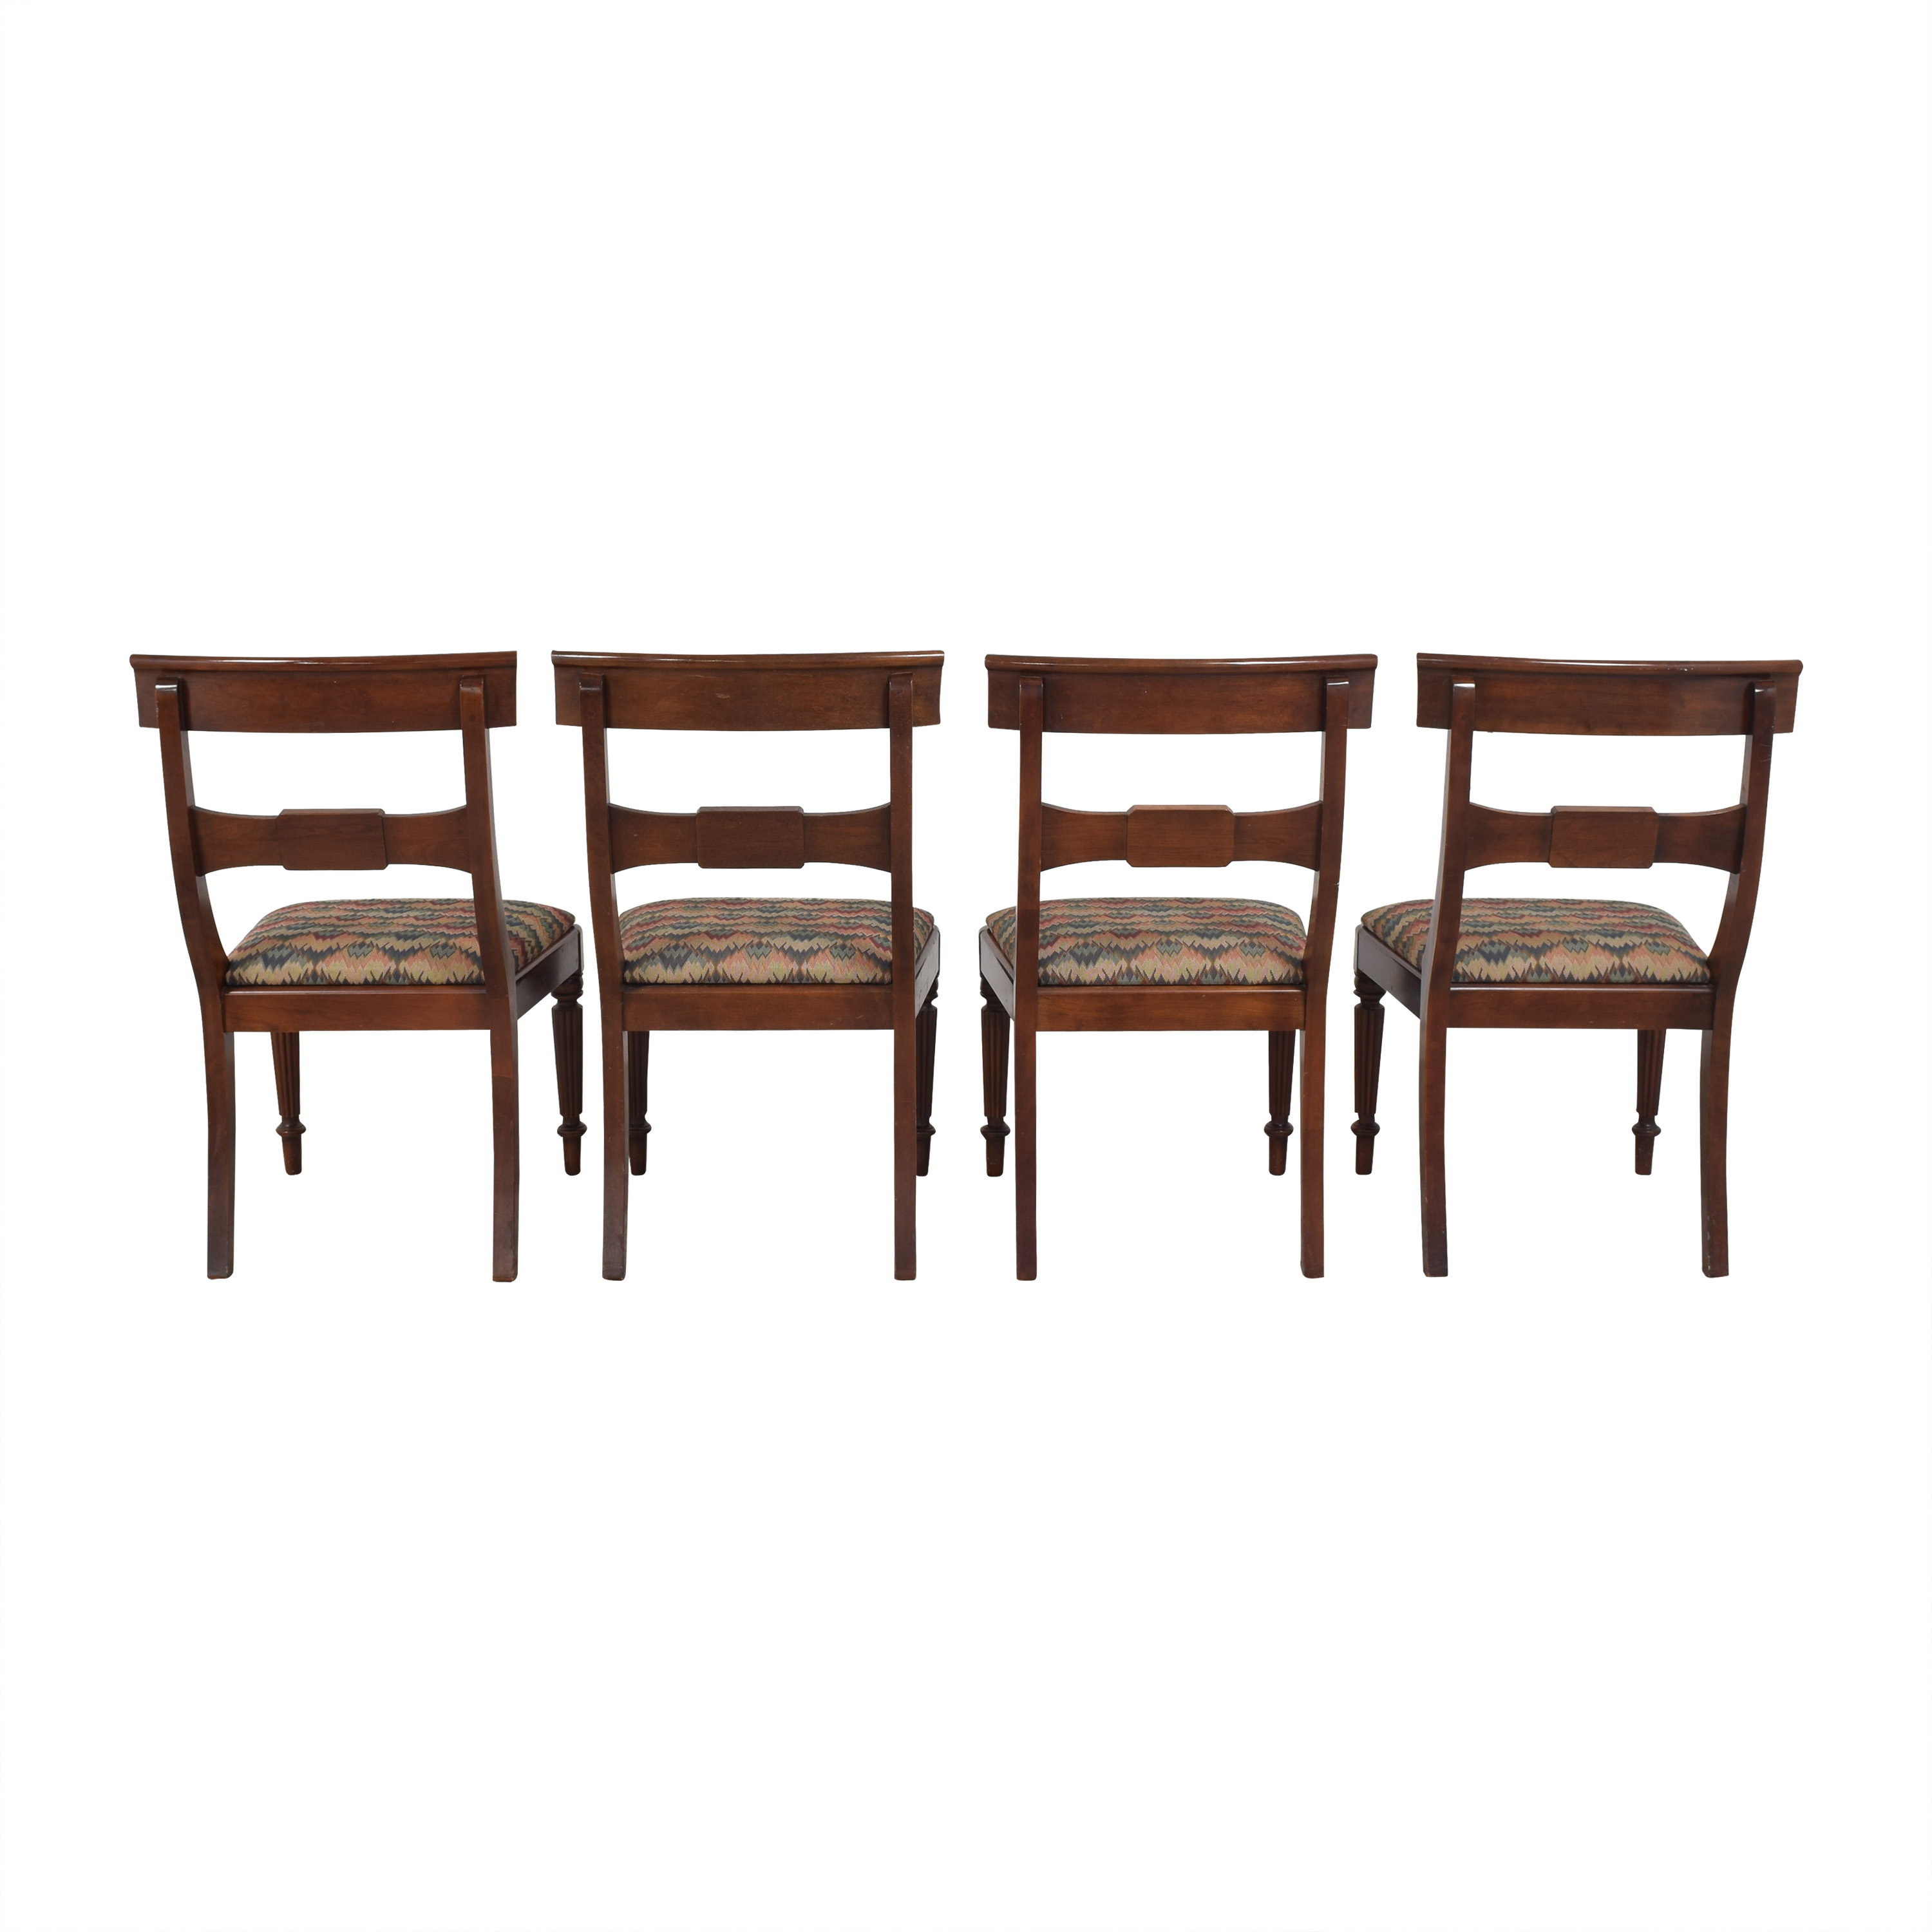 Statton Statton Dining Side Chairs multi